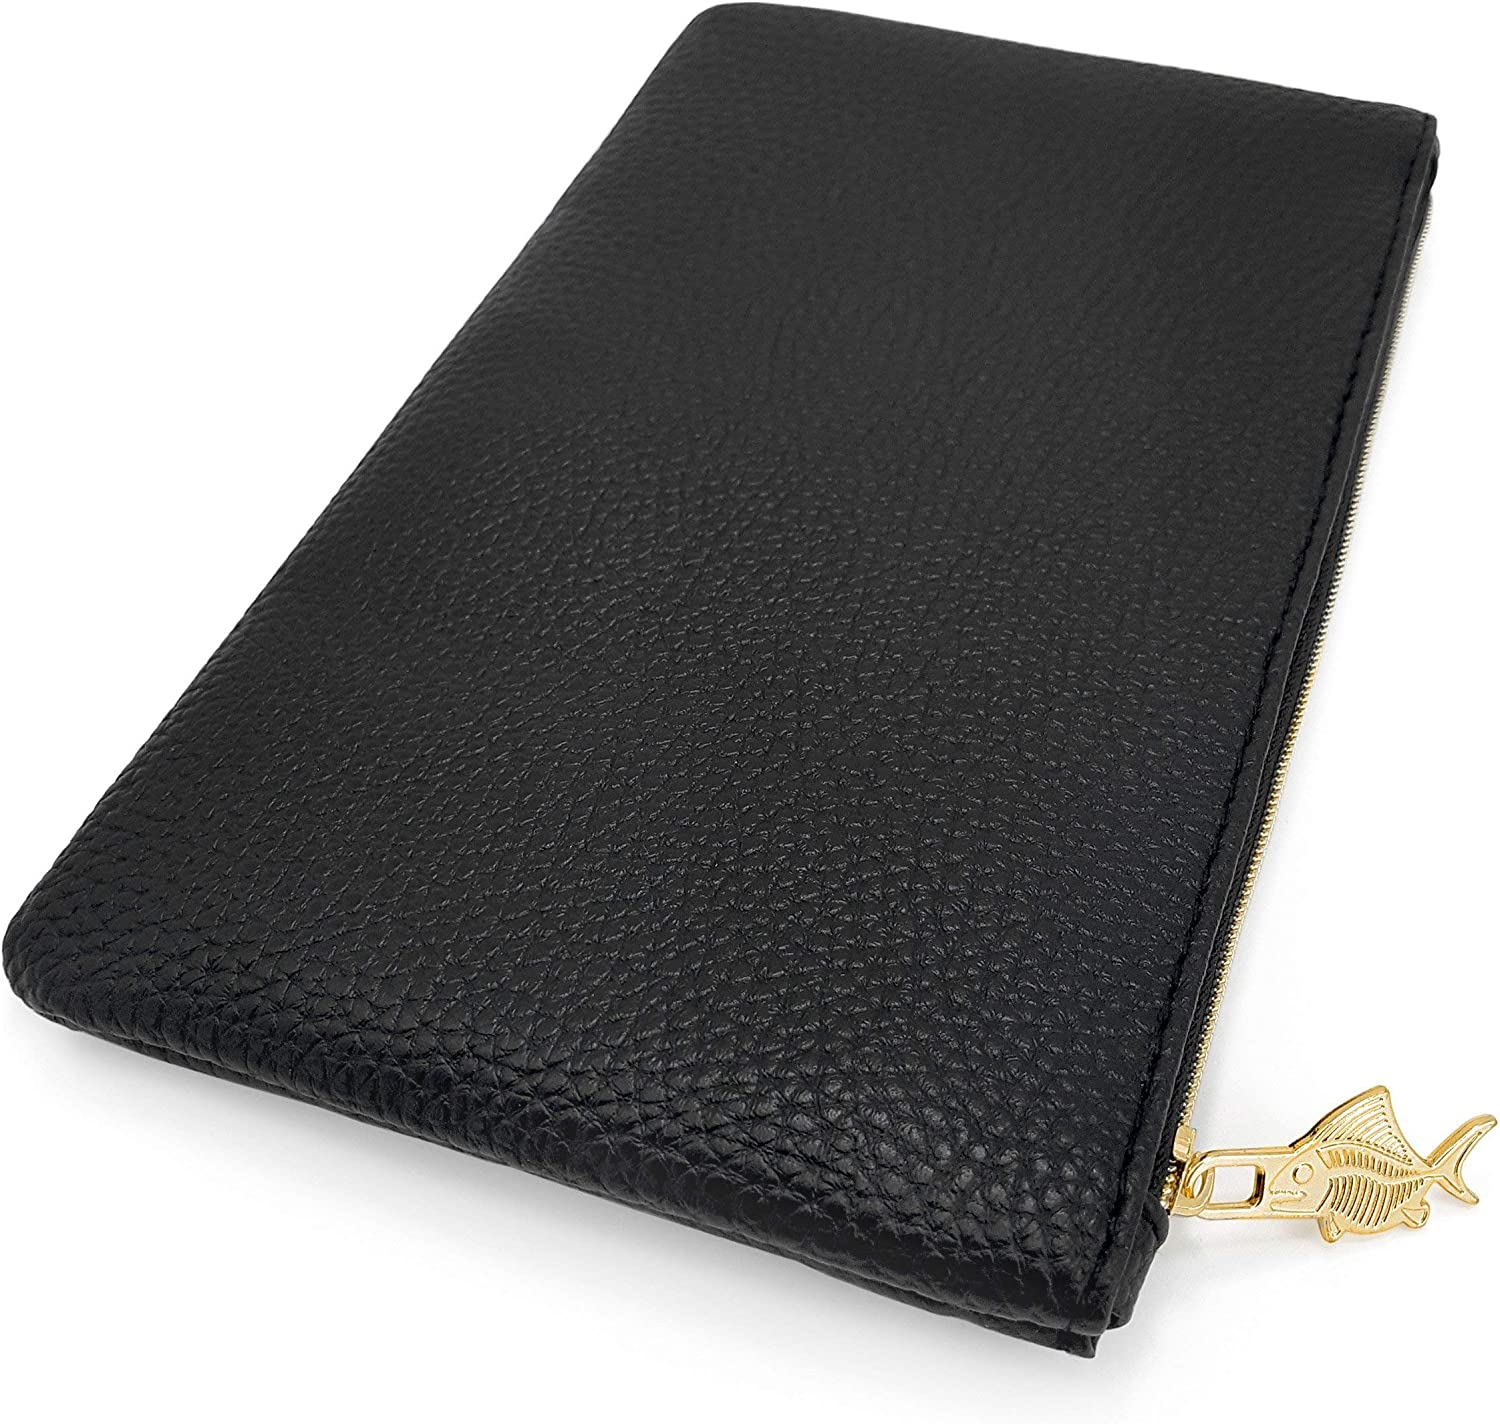 by Fat Belly Fish Black Faux Leather Pencil Case Leather Look Pencil Case